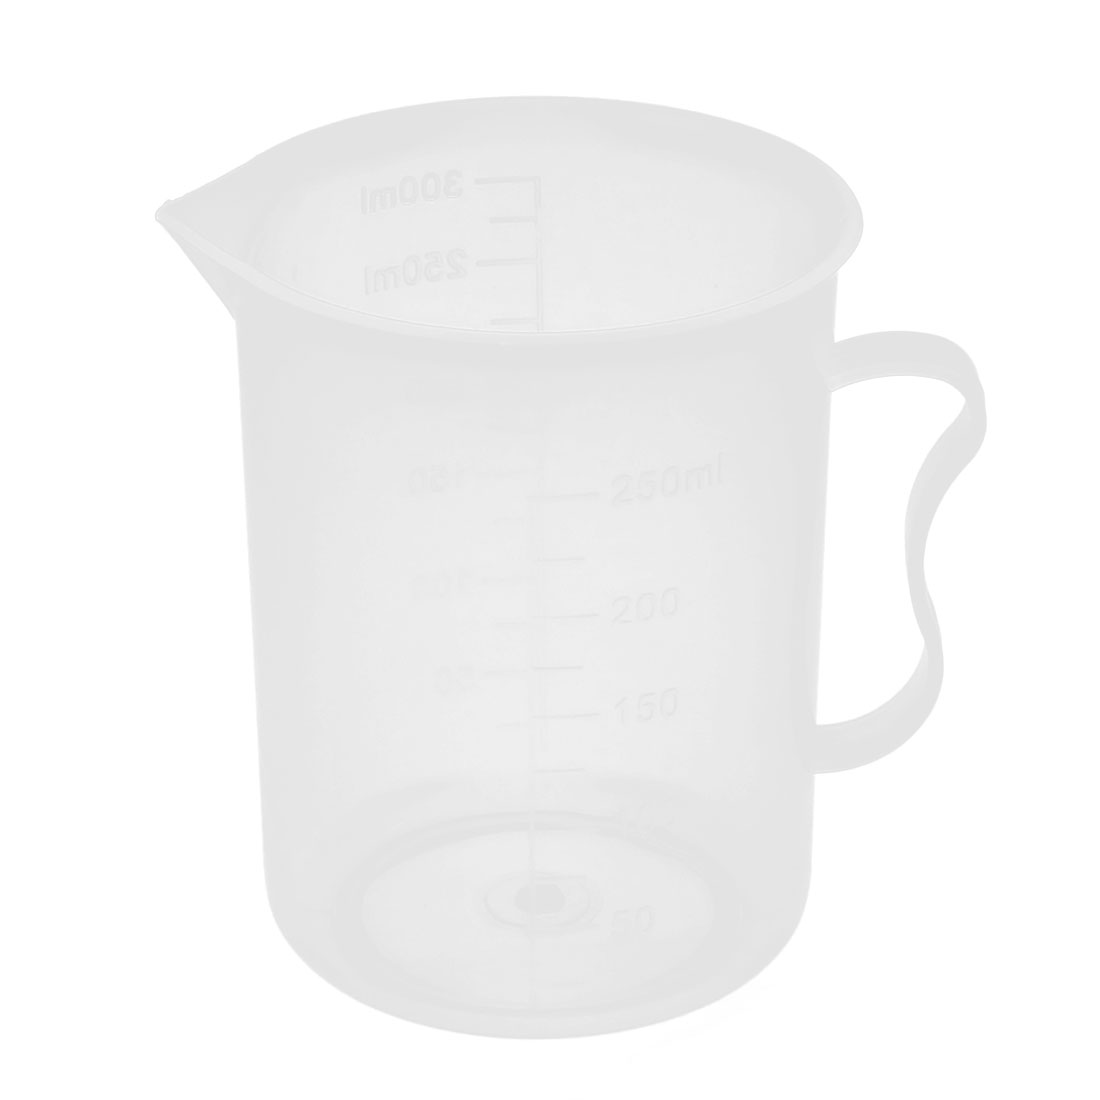 School Laboratory Plastic Water Liquid Container Measuring Testing Beaker 250mL